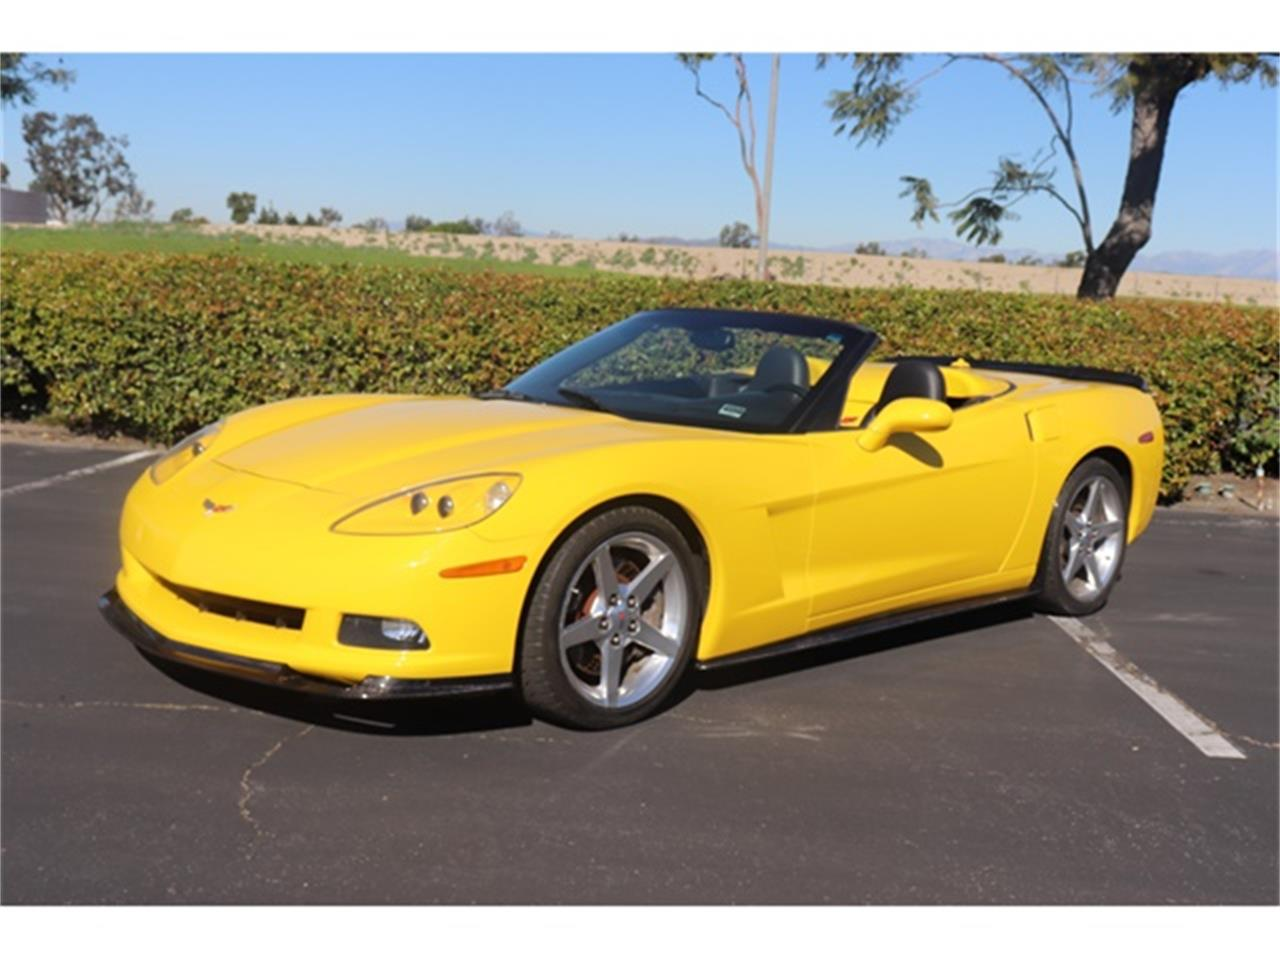 For Sale: 2005 Chevrolet Corvette in Anaheim, California